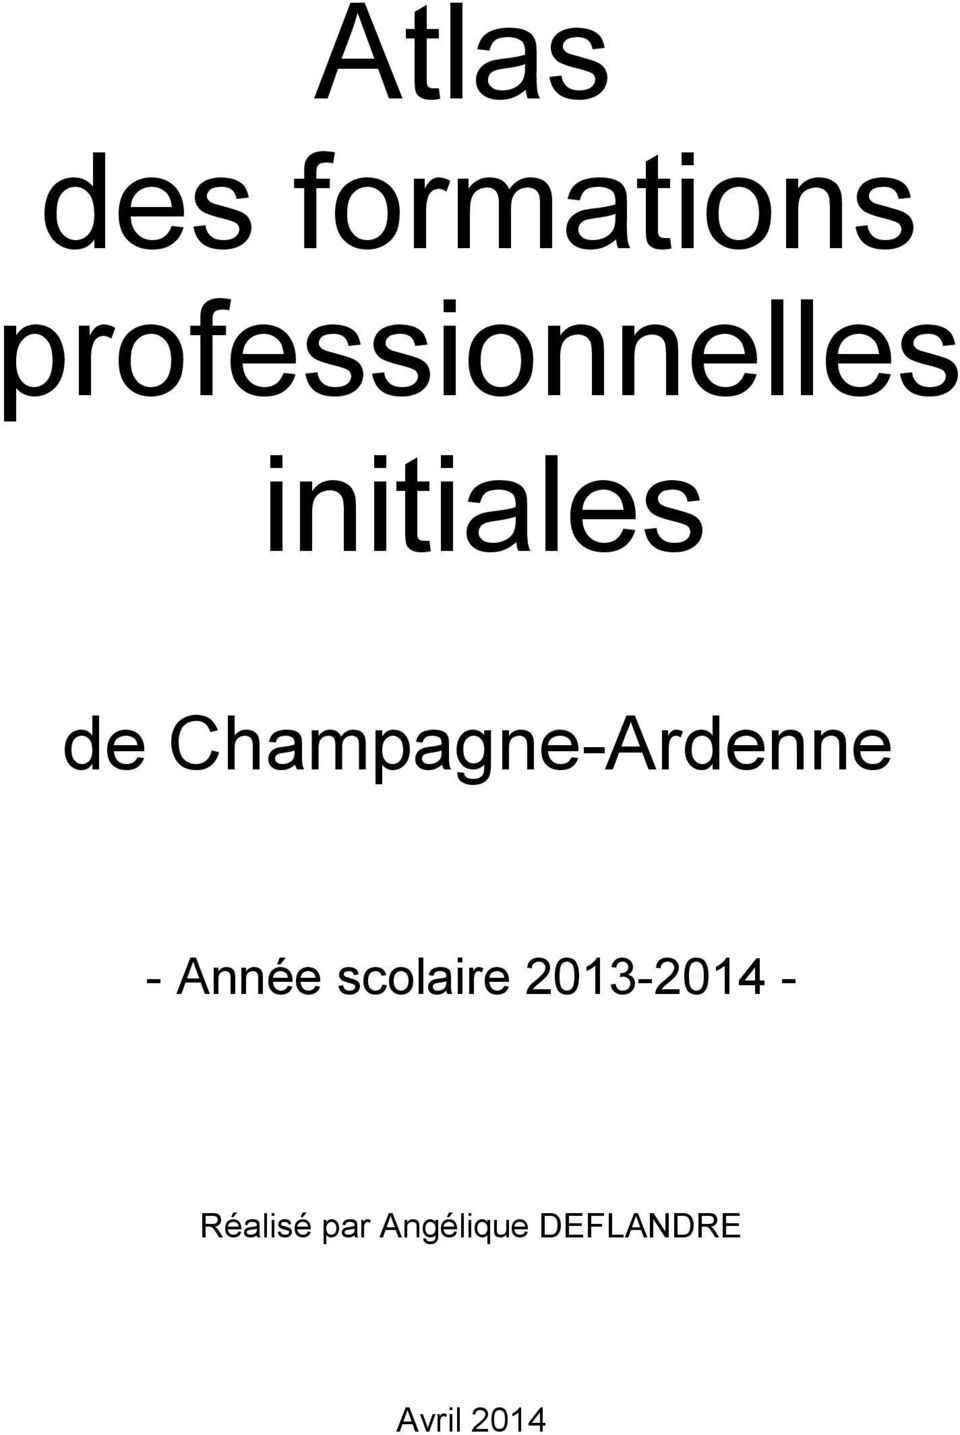 Champagne-Ardenne - Année scolaire